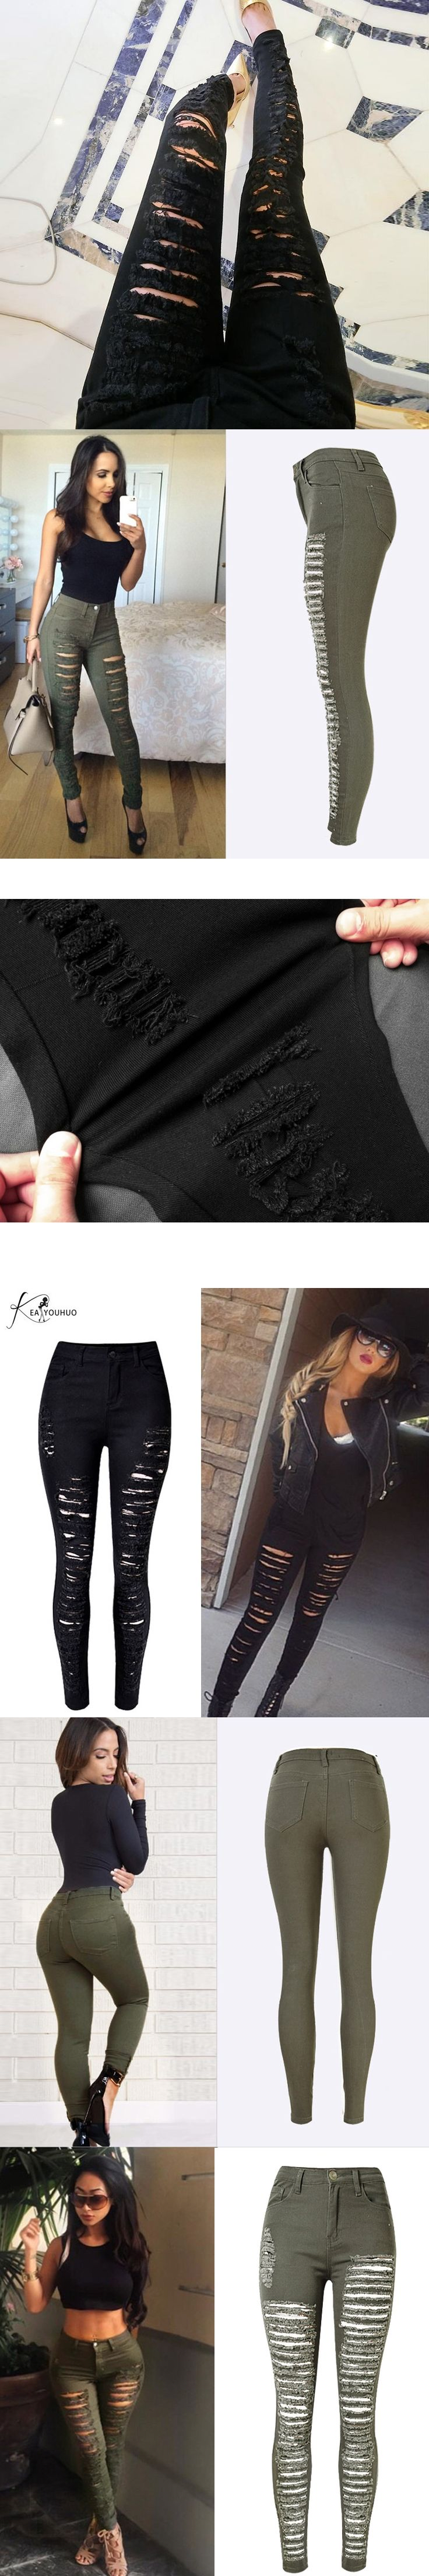 Skinny Pencil Pants Woman High Waist Ripped Jeans For Women Denim Pants Army Green White Black Elastic Trousers Women's Jeans